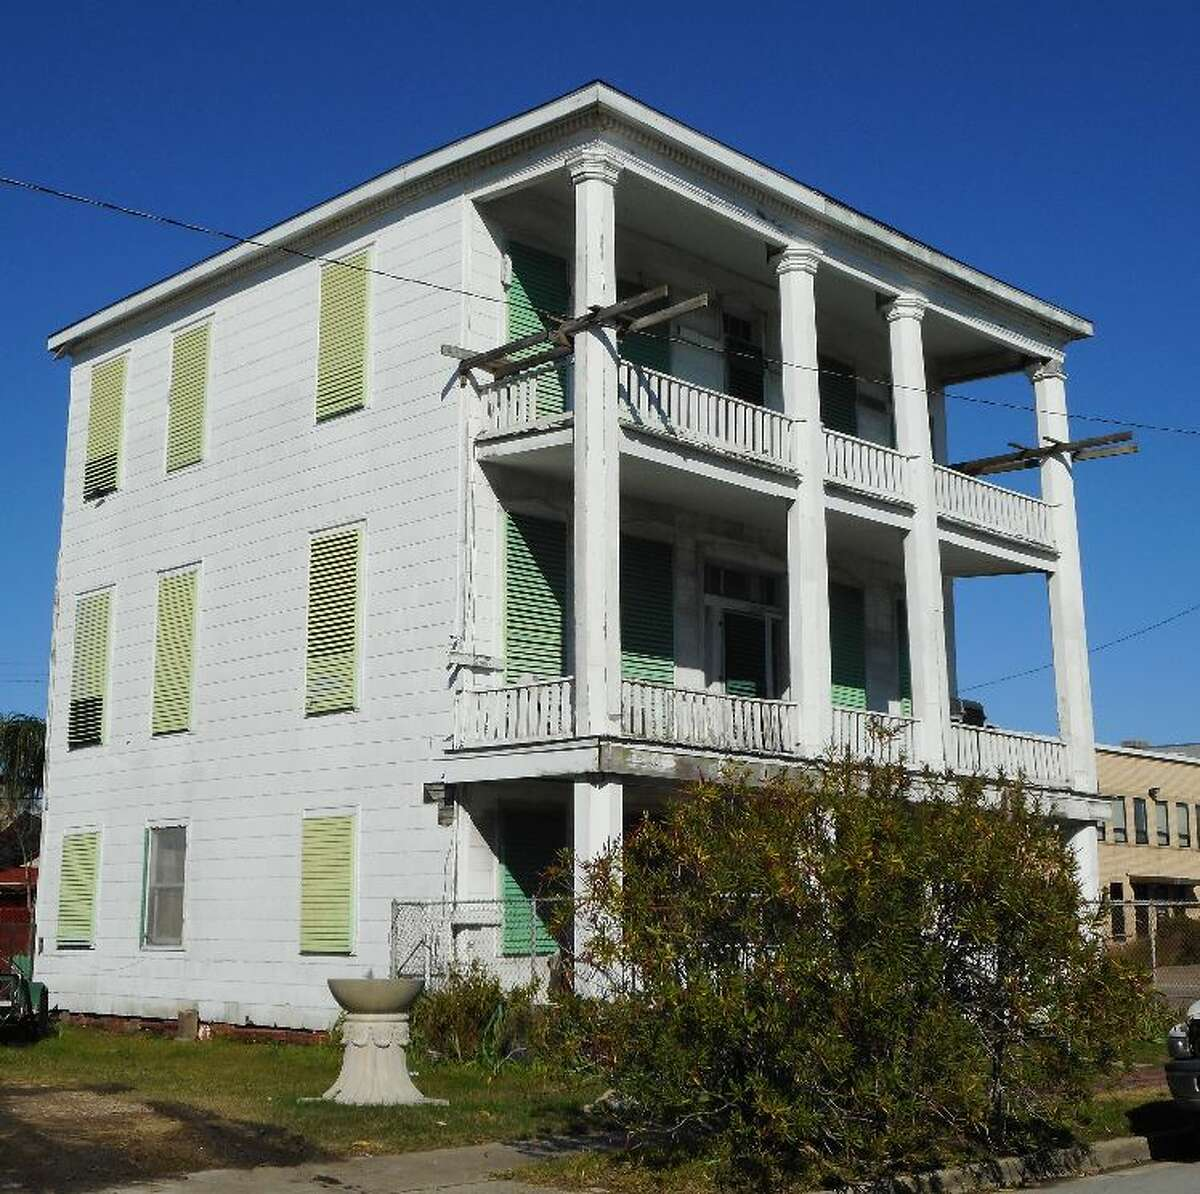 Historic Galveston Homes And Structures Placed On Endangered List